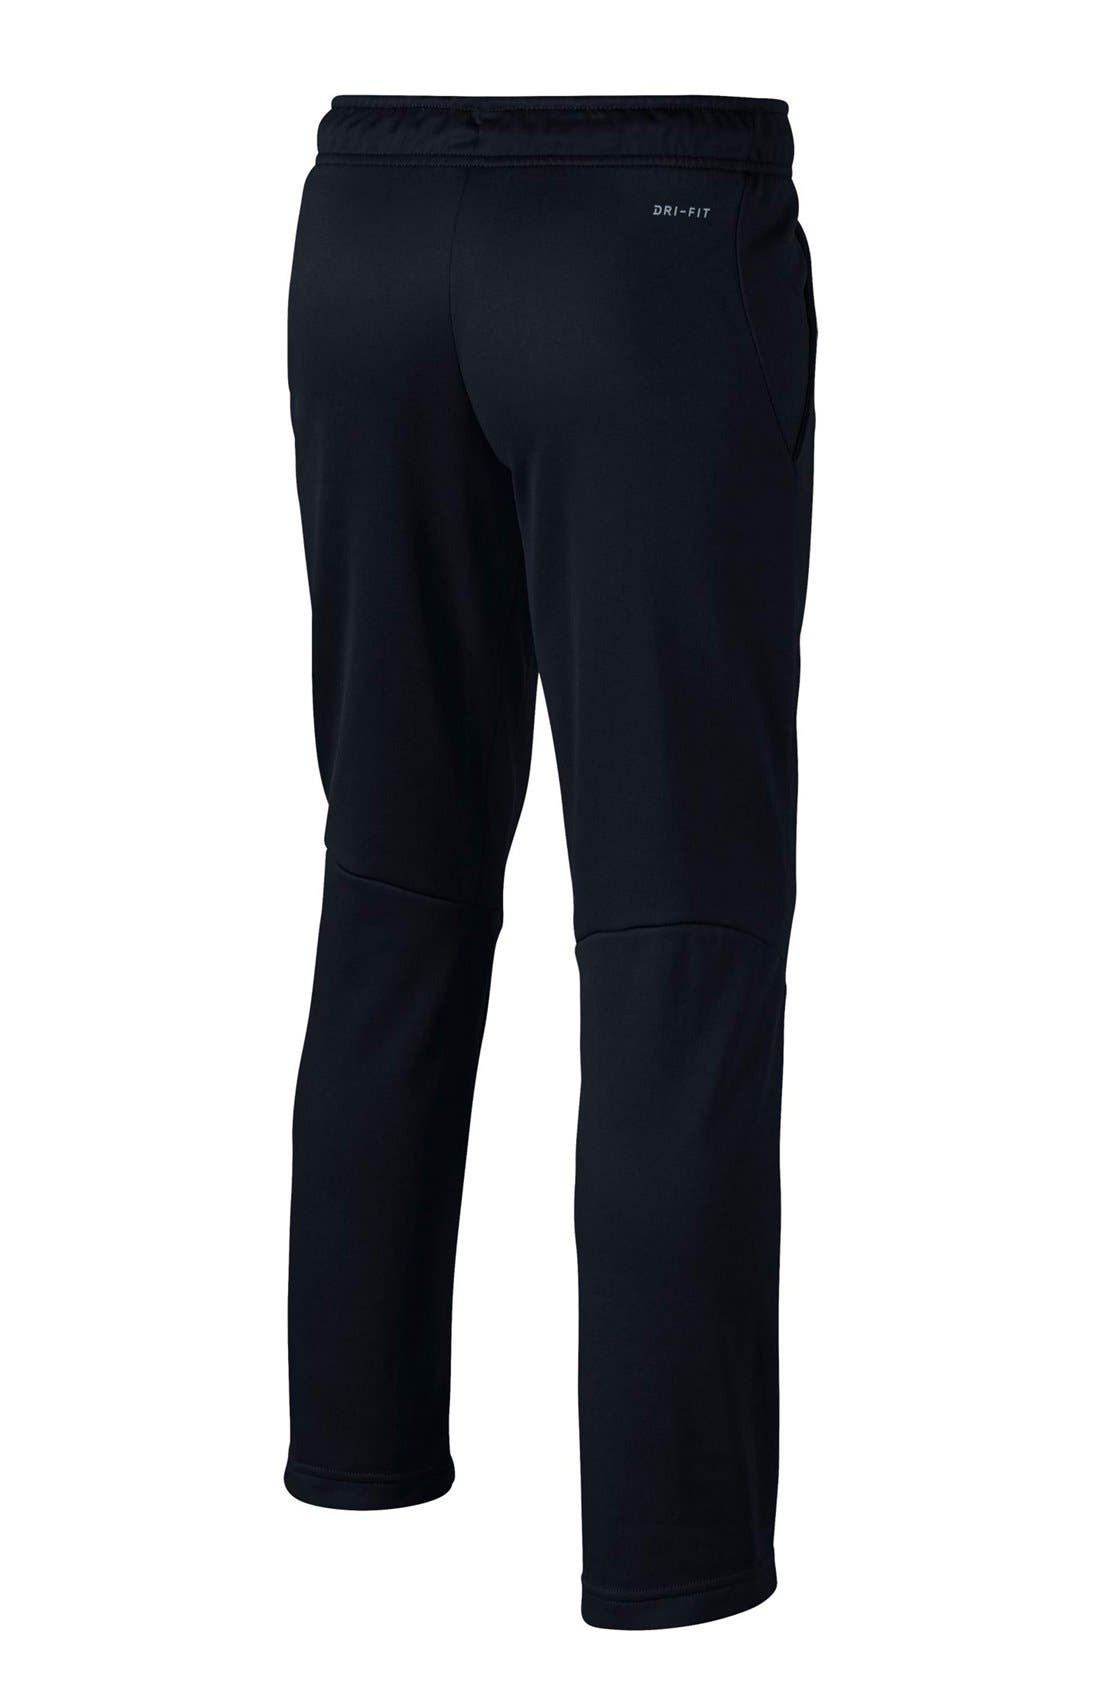 Alternate Image 2  - Nike Therma-FIT Training Pants (Little Boys & Big Boys) (Regular Retail Price: $40.00)